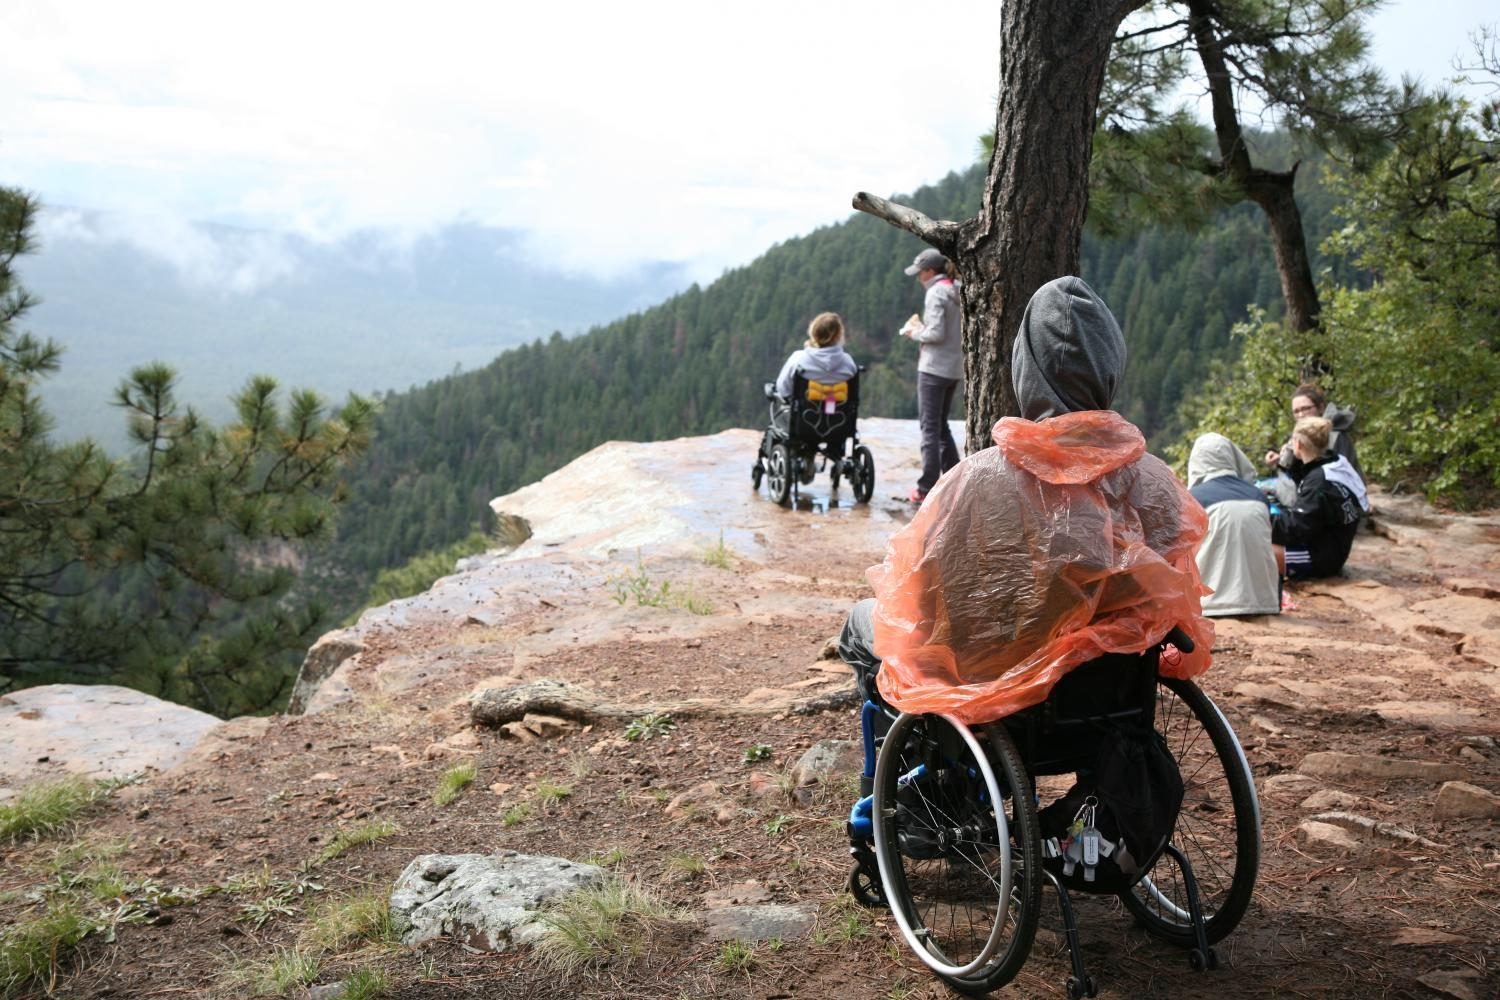 Arizona is one of the only states with a state parks system that has an accessibility coordinator, which means having accessible trails and other wild spaces is a conversation that's constantly happening.